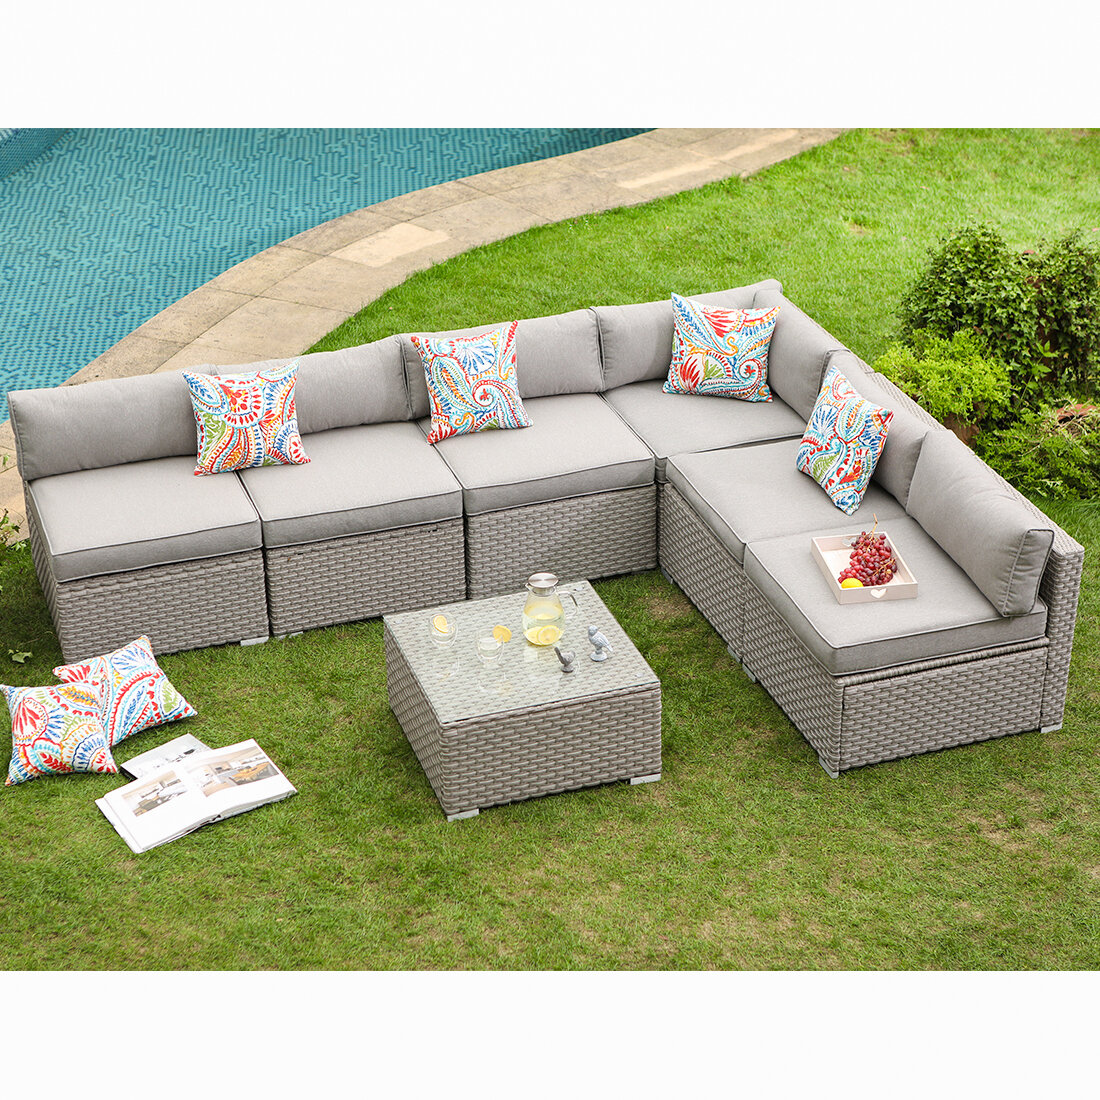 7 Piece Outdoor Furniture Set Warm Gray